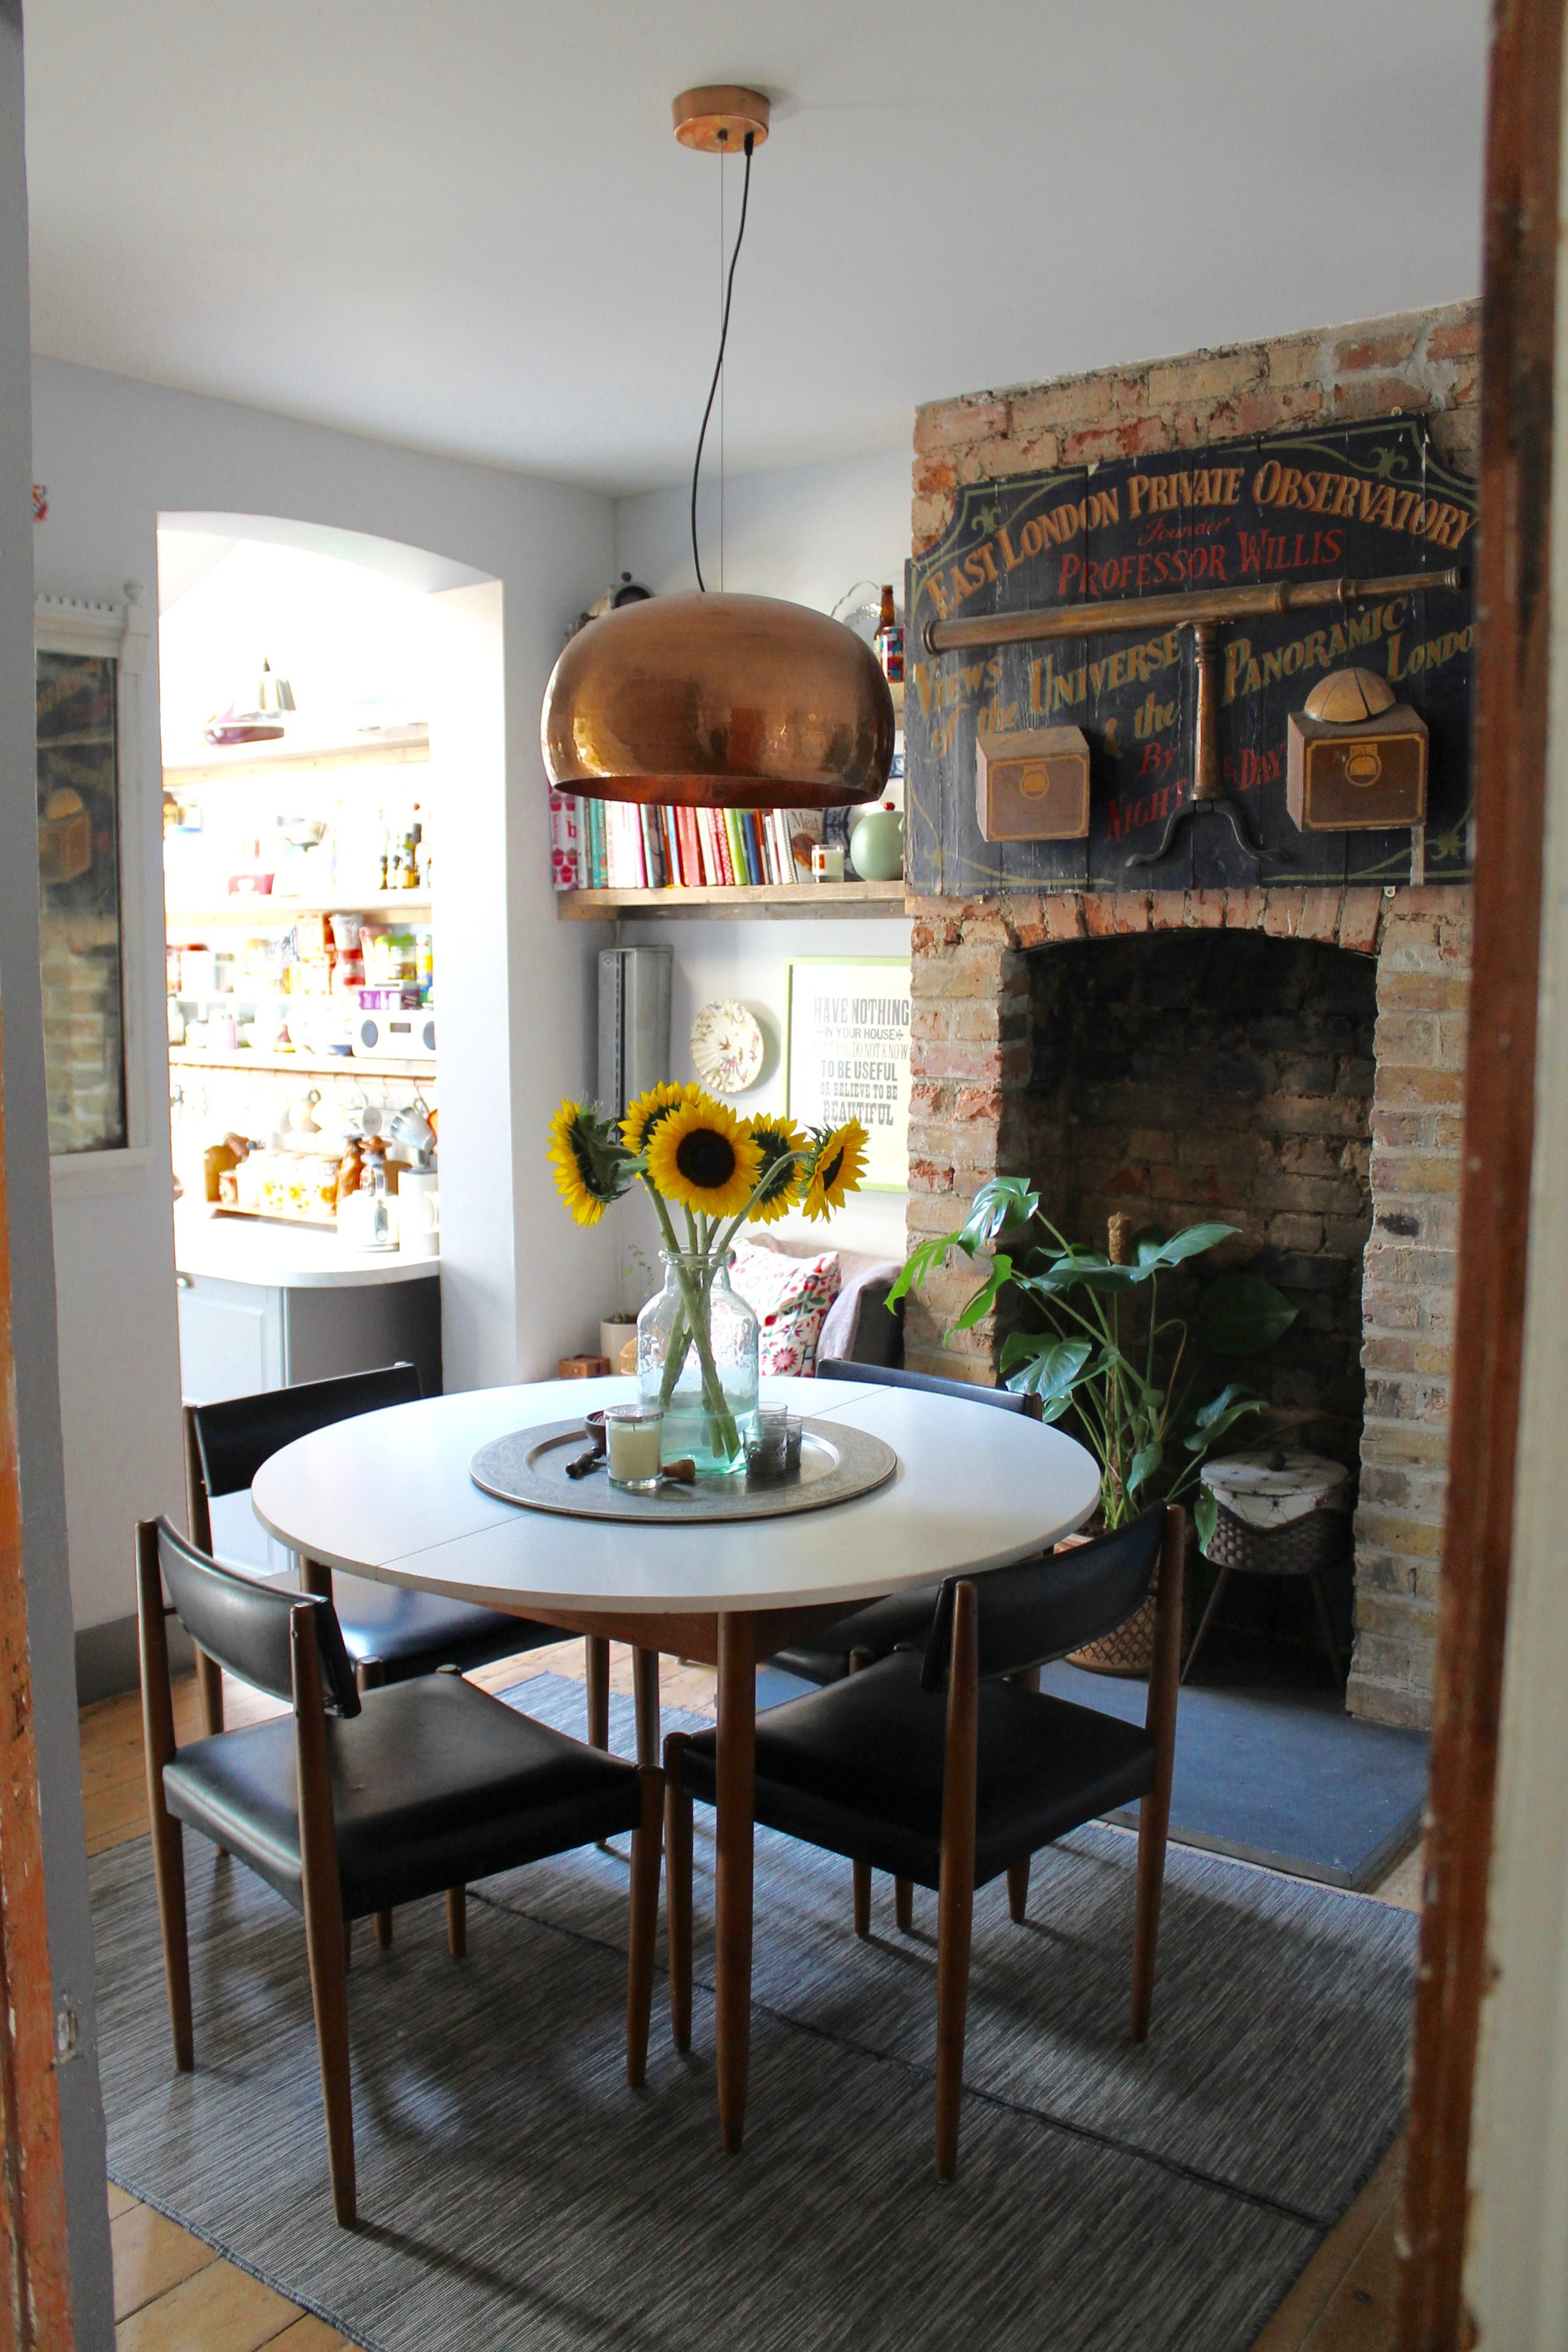 Photography provided by Joanna Thornhill - Dining room with my 1960's eBay table and chairs, IKEA rug and 3D artwork above the fireplace found on the street.